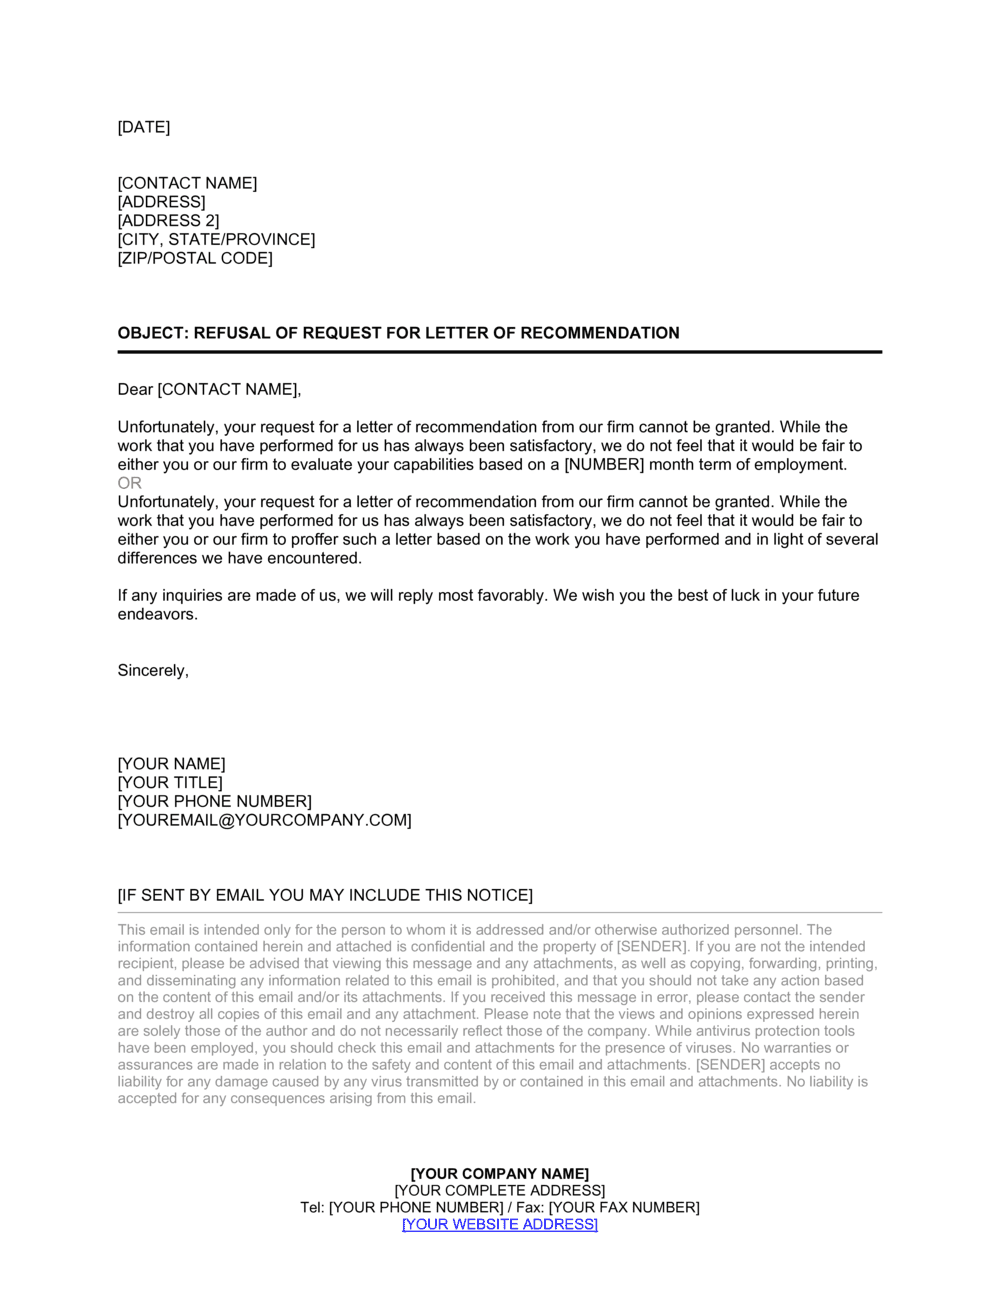 Business-in-a-Box's Refusal of Request for Letter of Recommendation Template